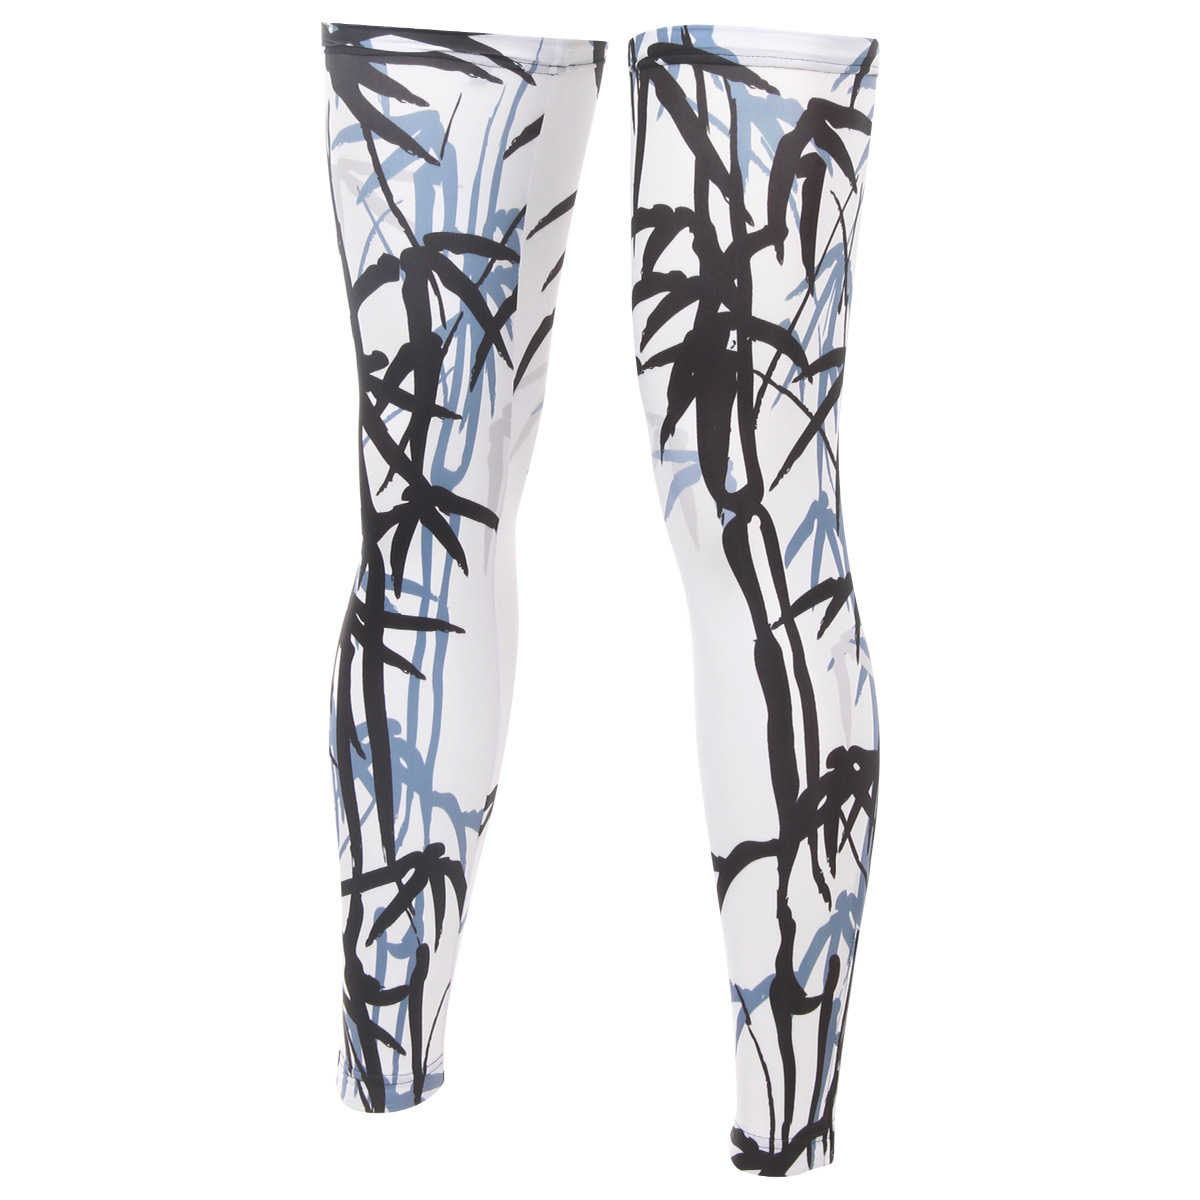 BOODUN Ink Painting Of Bamboo Riding Leg Set Cycling Outdoors Sunscreen Leg Set Bicycle Motion Defence Leggings Set